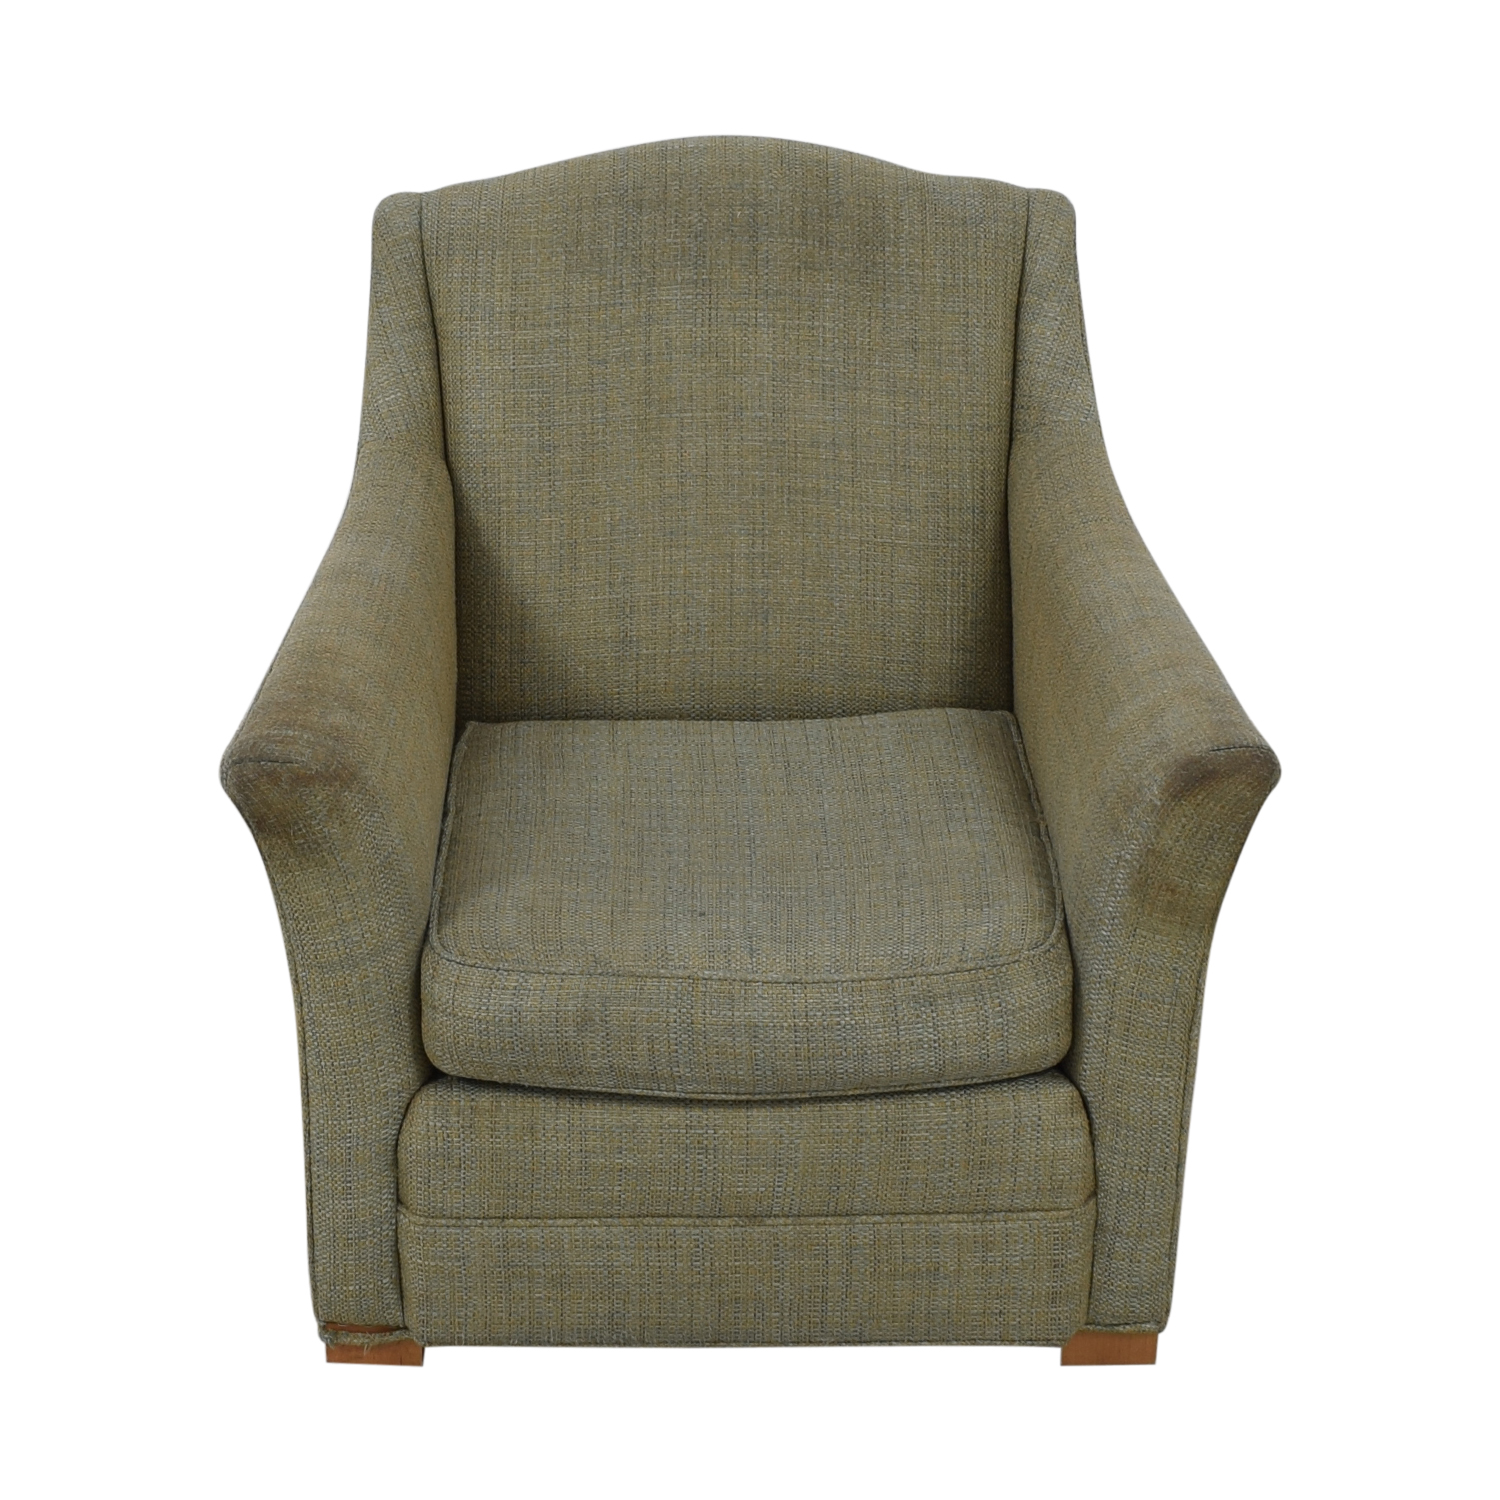 Mitchell Gold + Bob Williams Mitchell Gold + Bob Williams Armchair nj